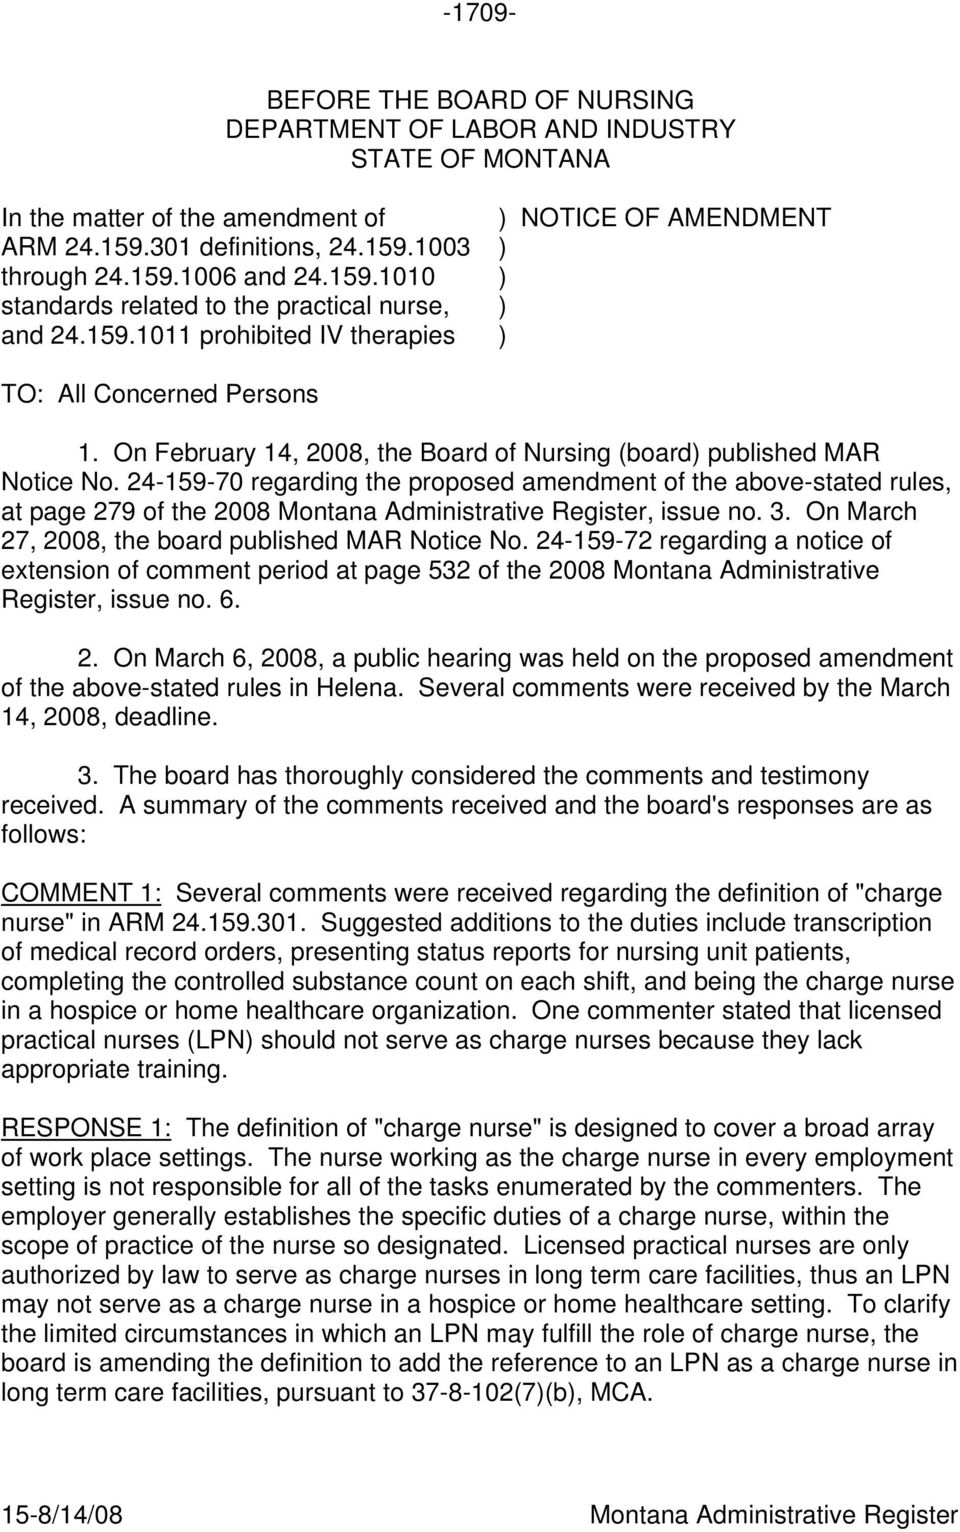 BEFORE THE BOARD OF NURSING DEPARTMENT OF LABOR AND INDUSTRY STATE OF  MONTANA - PDF Free Download